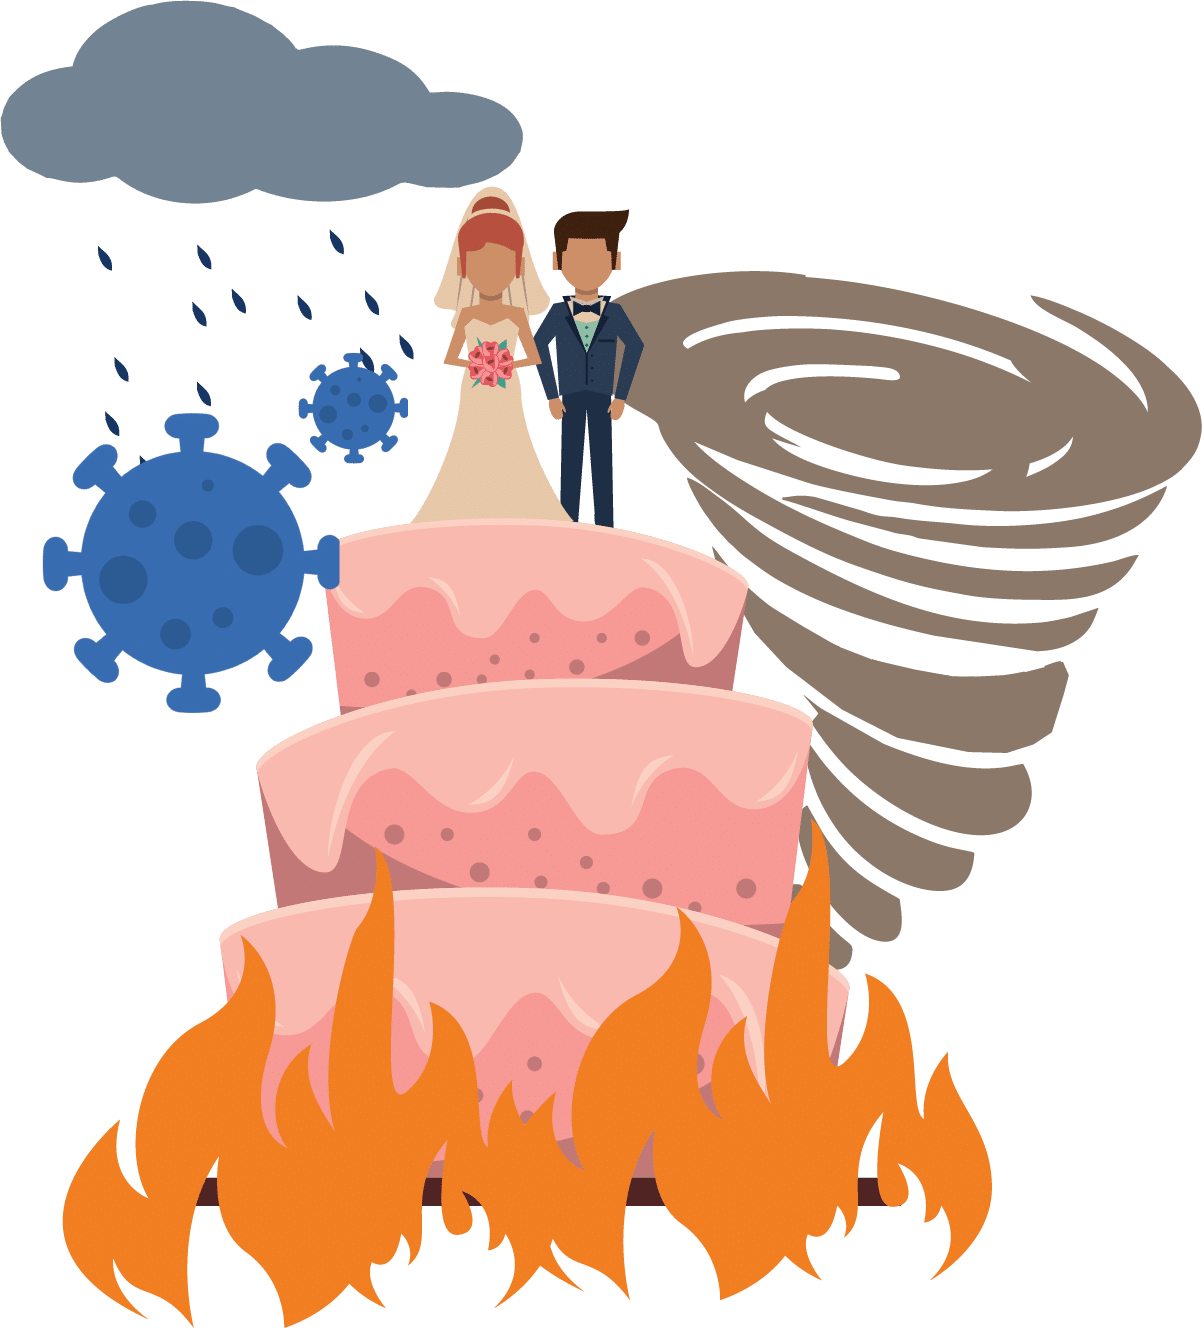 illustration of a wedding disaster